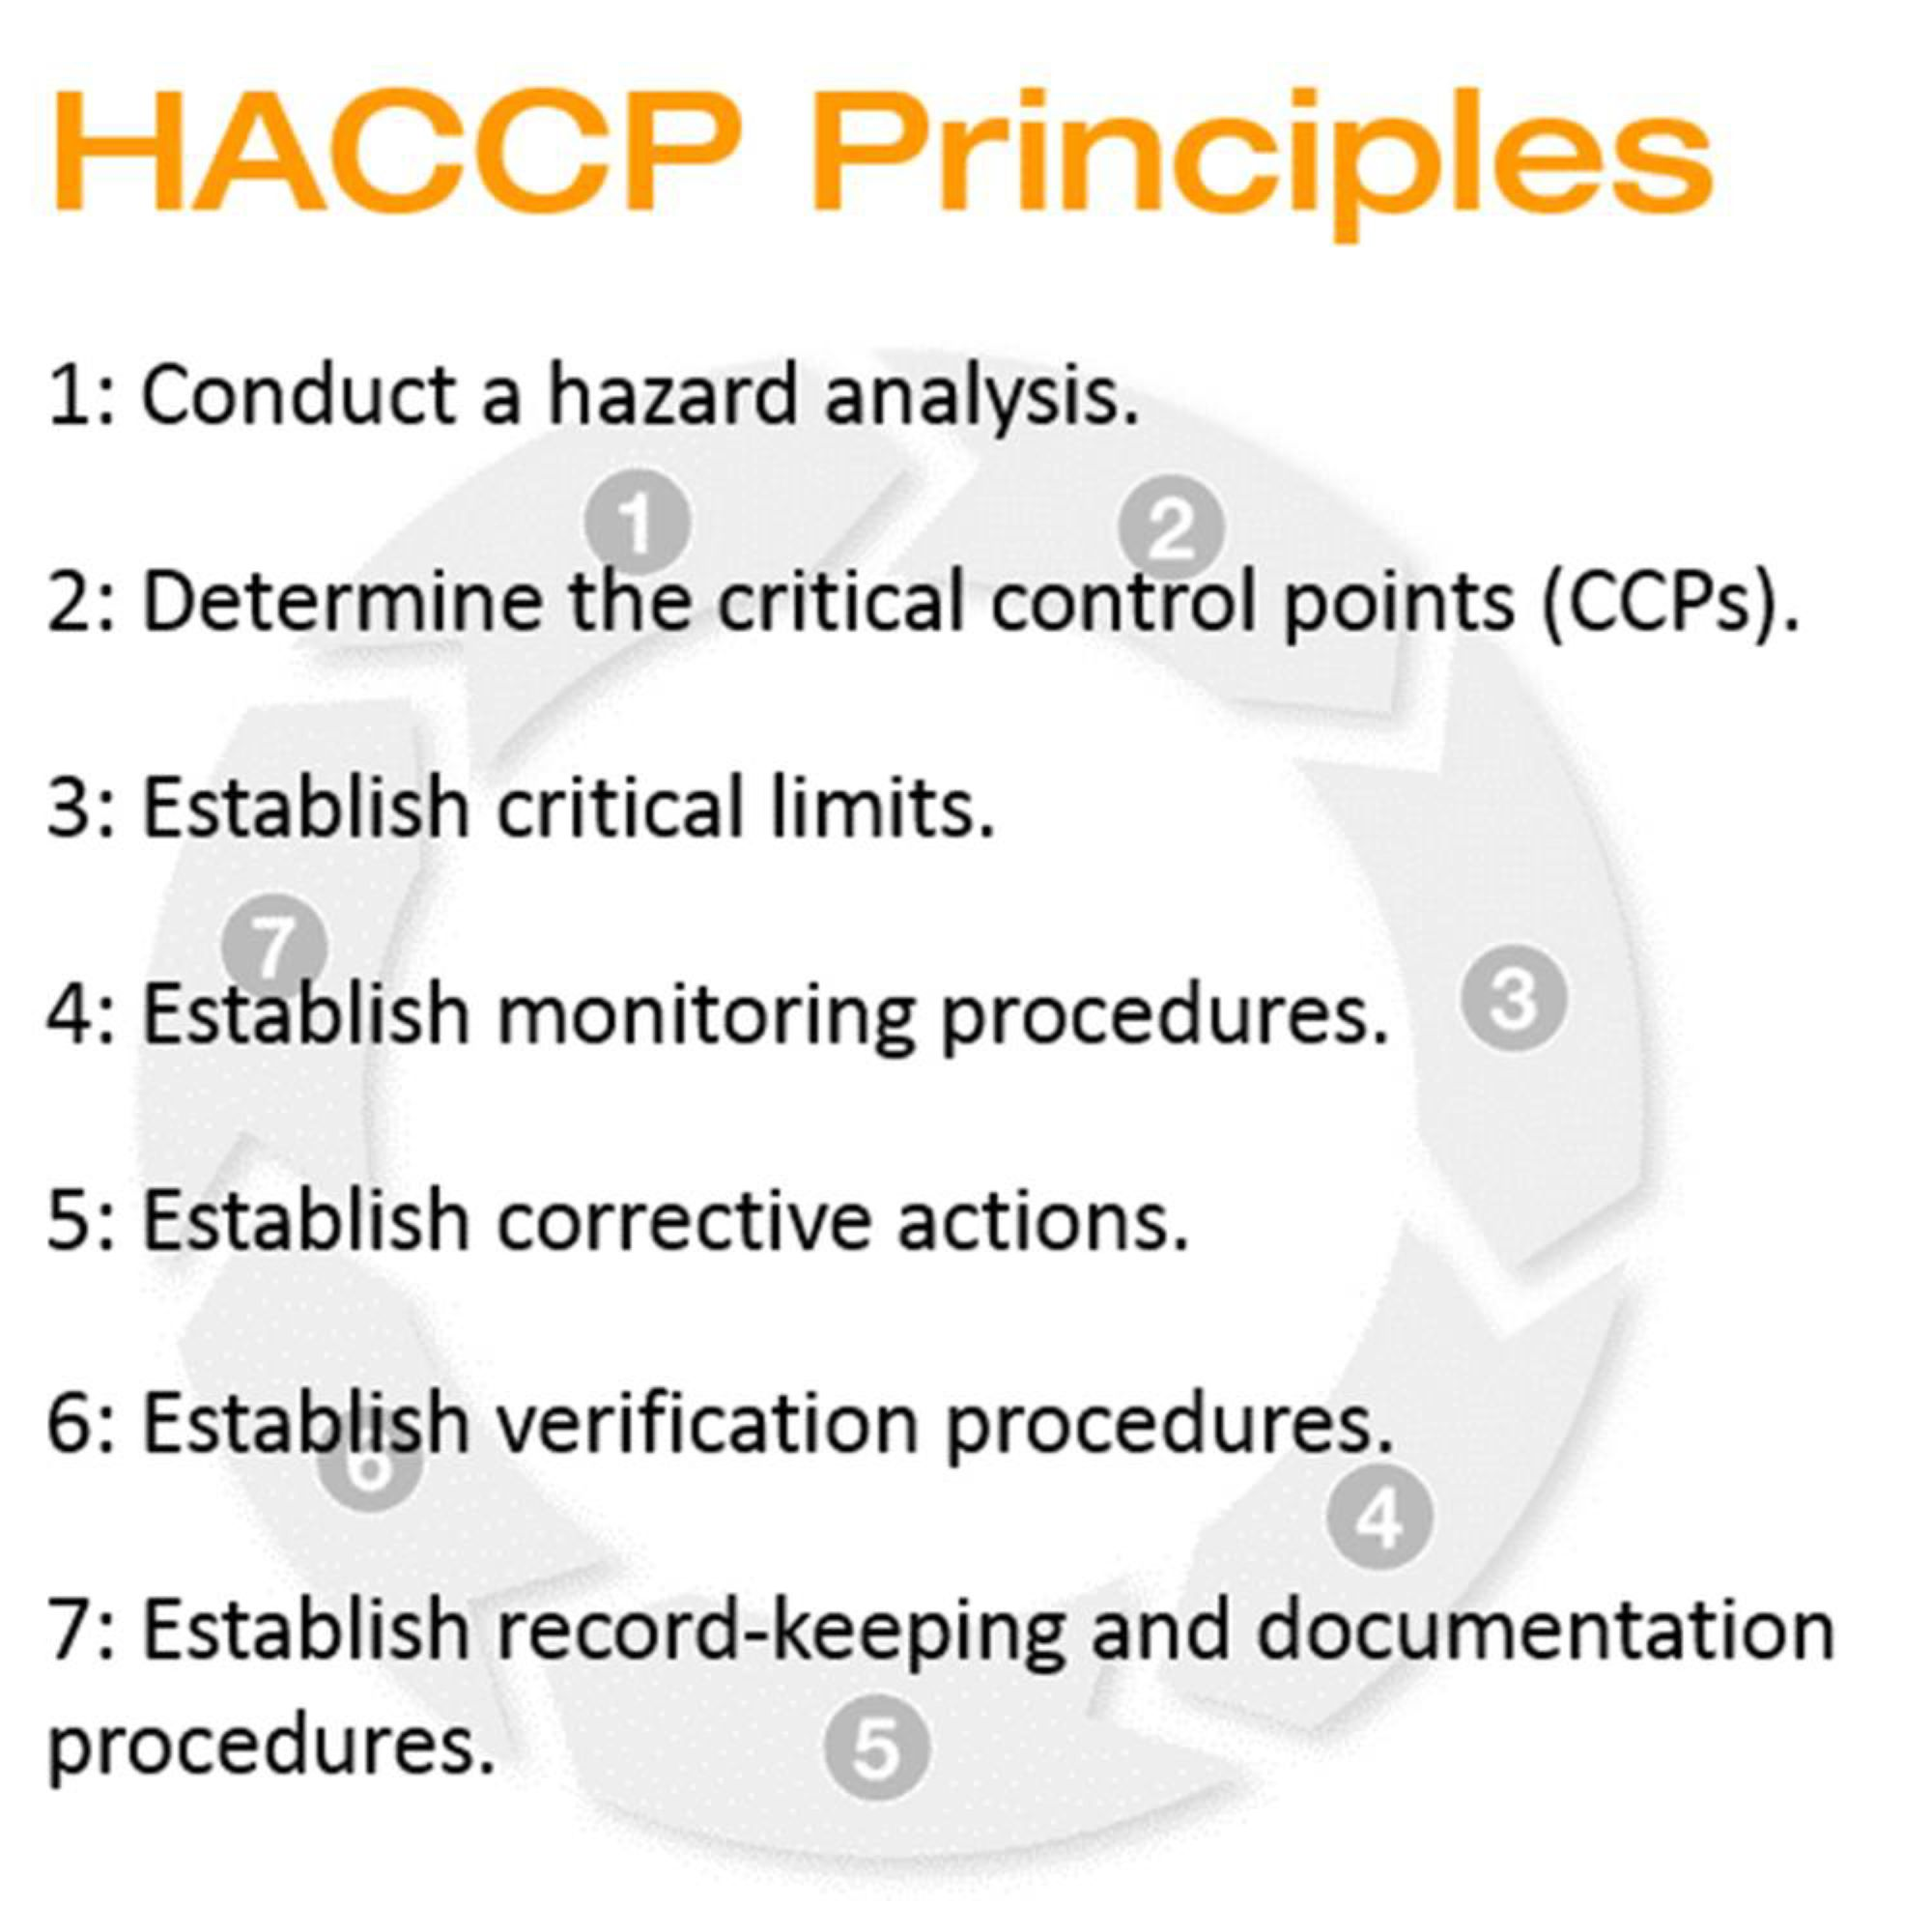 smarter-food-safety-blog-2-image-haccp-2.jpg